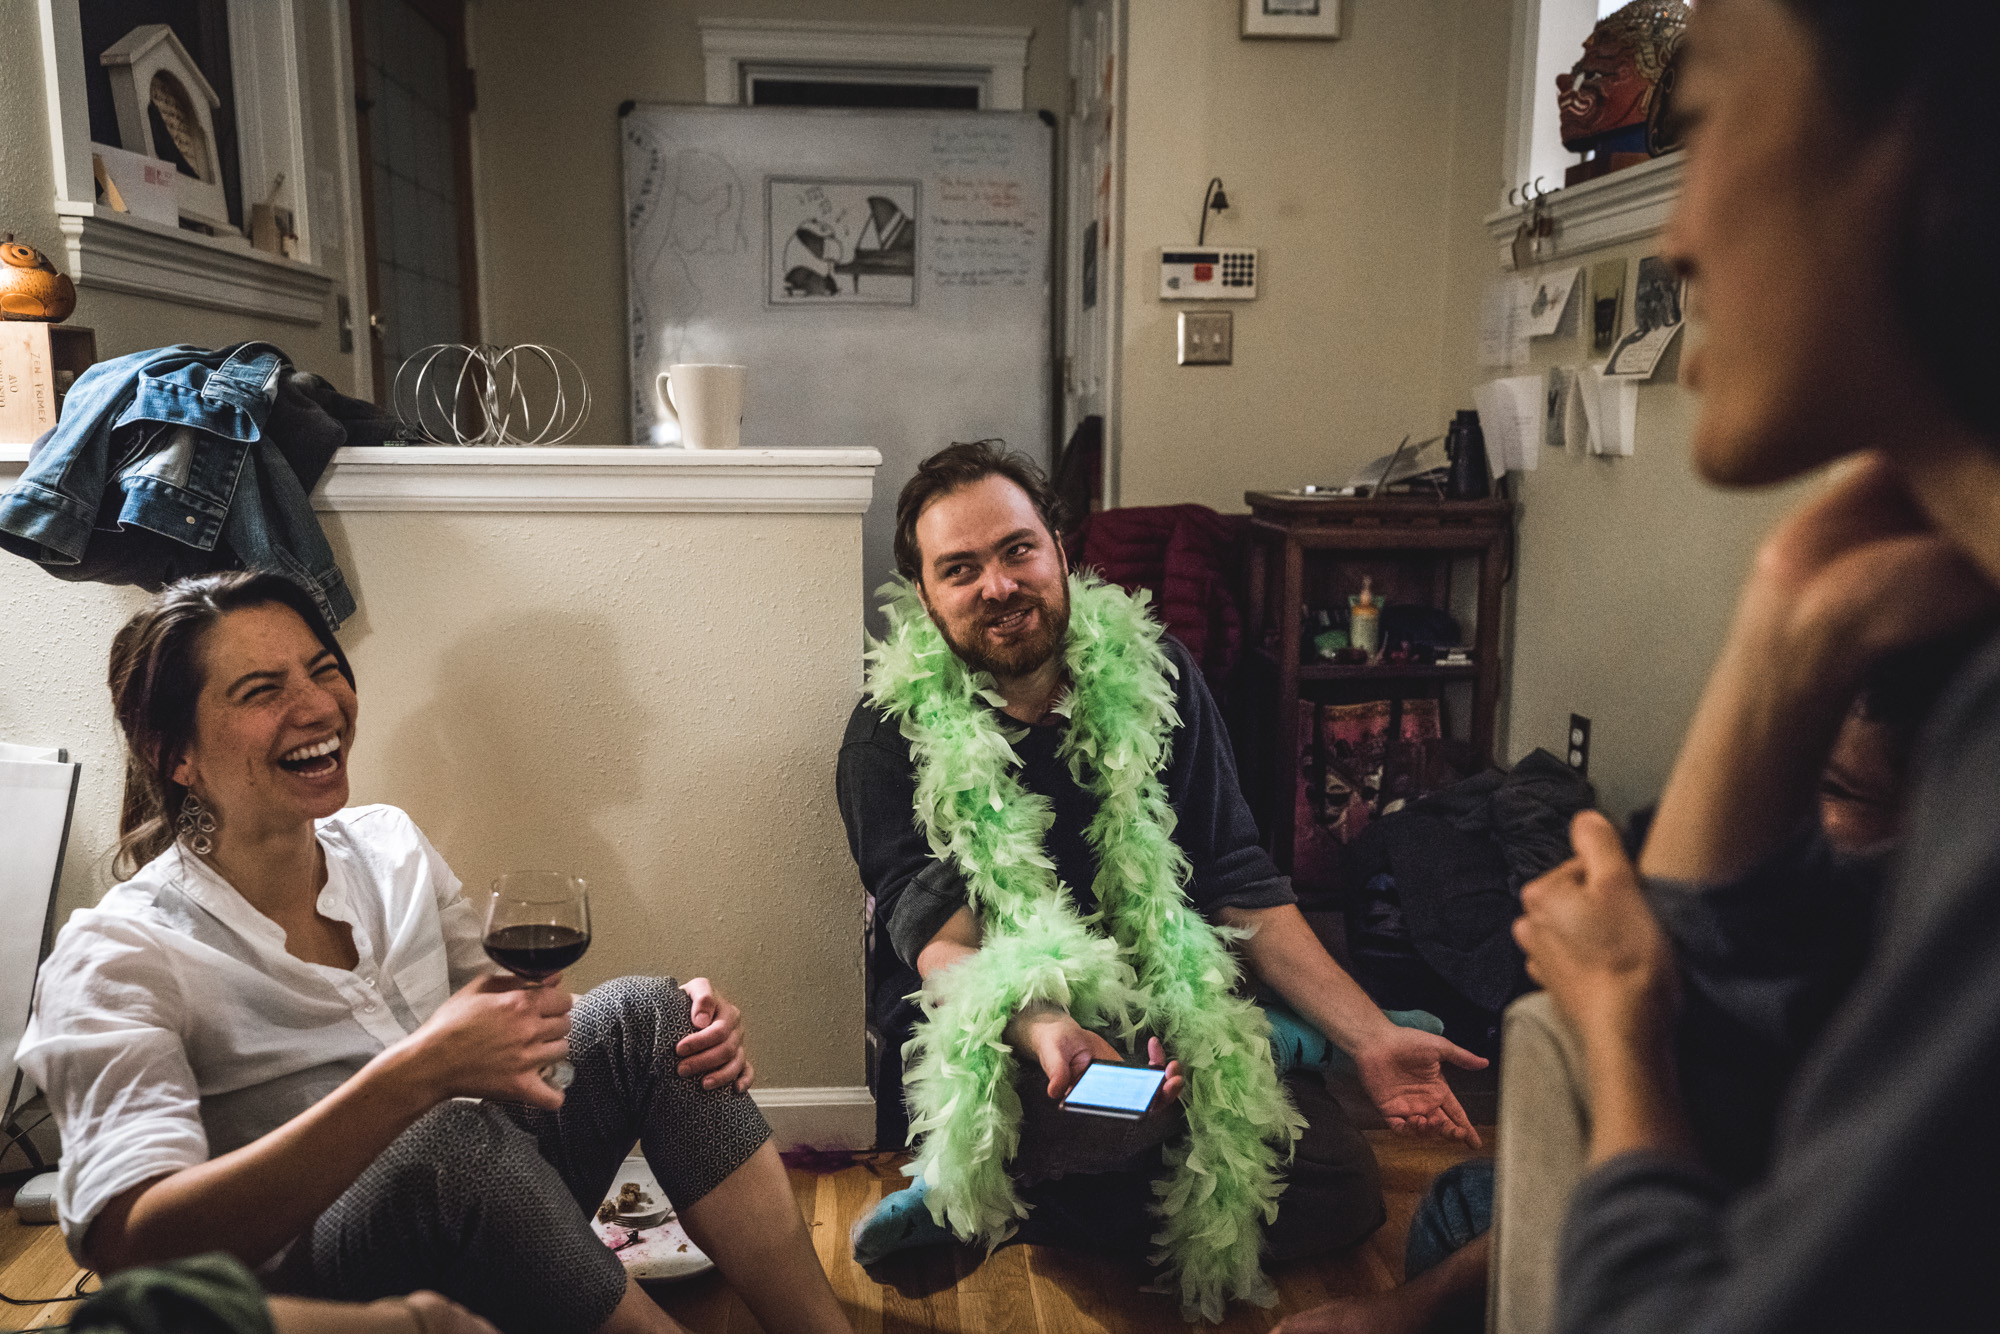 Man wearing a green boa sits on the floor and laughs and drinks wine with friends